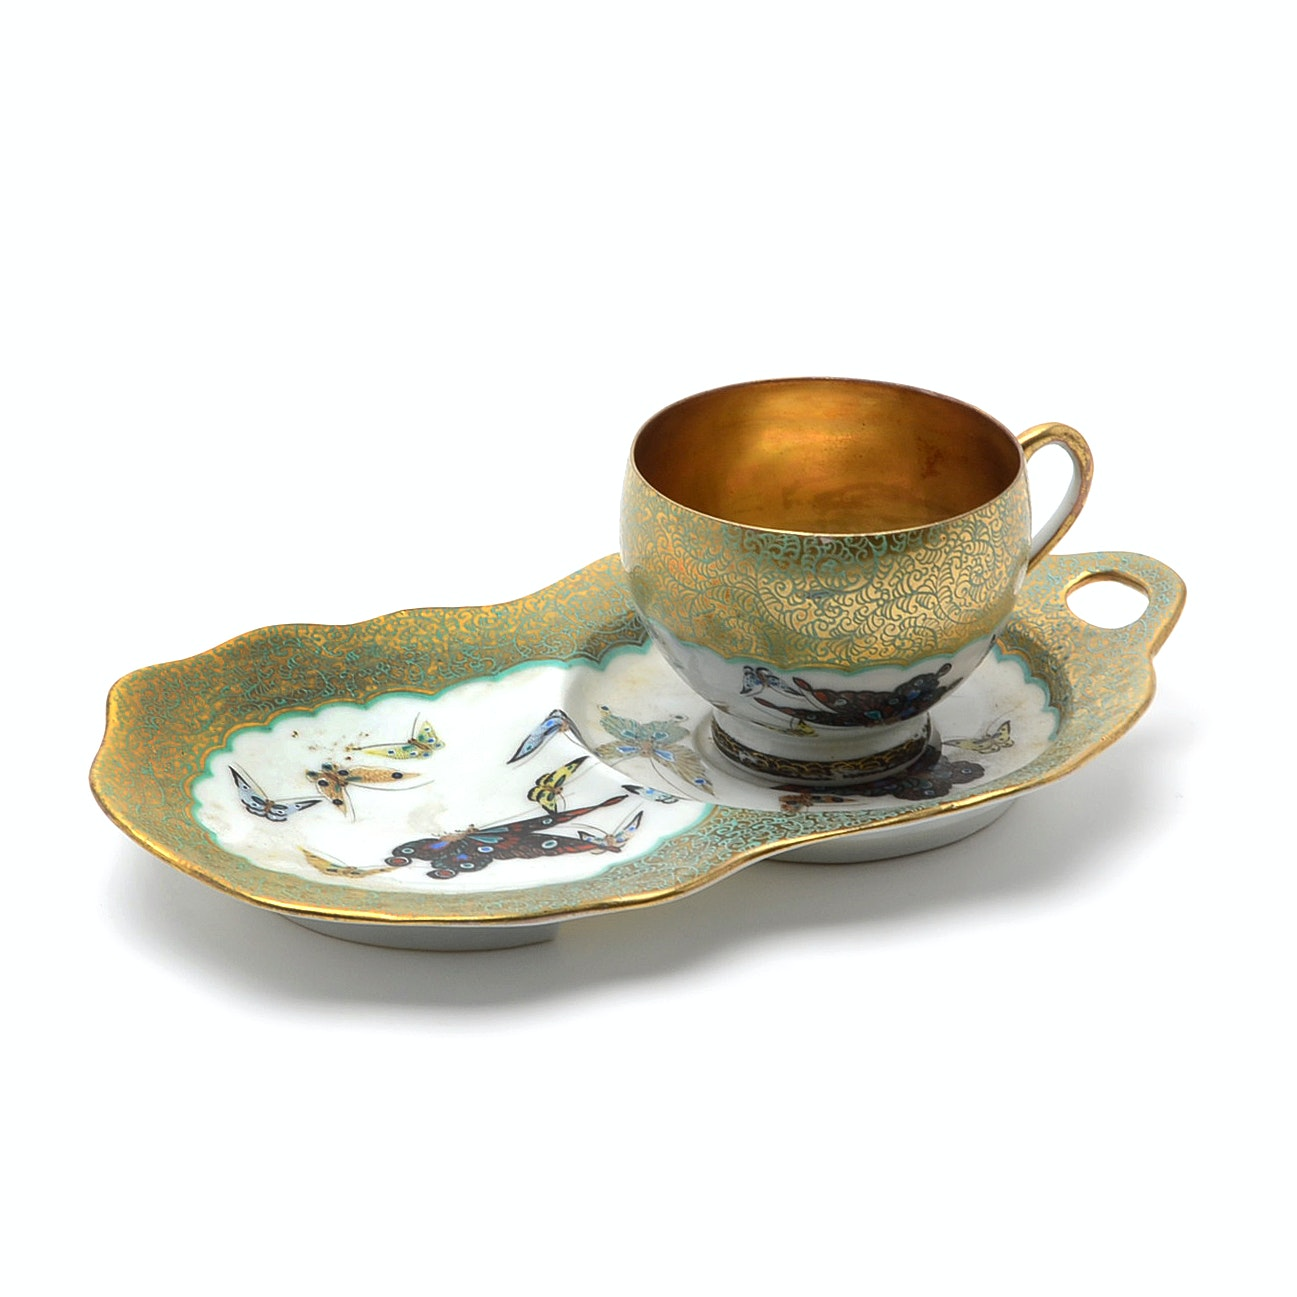 Early 20th Century Japanese Porcelain Hand-Painted Tea Cup and Snack Plate